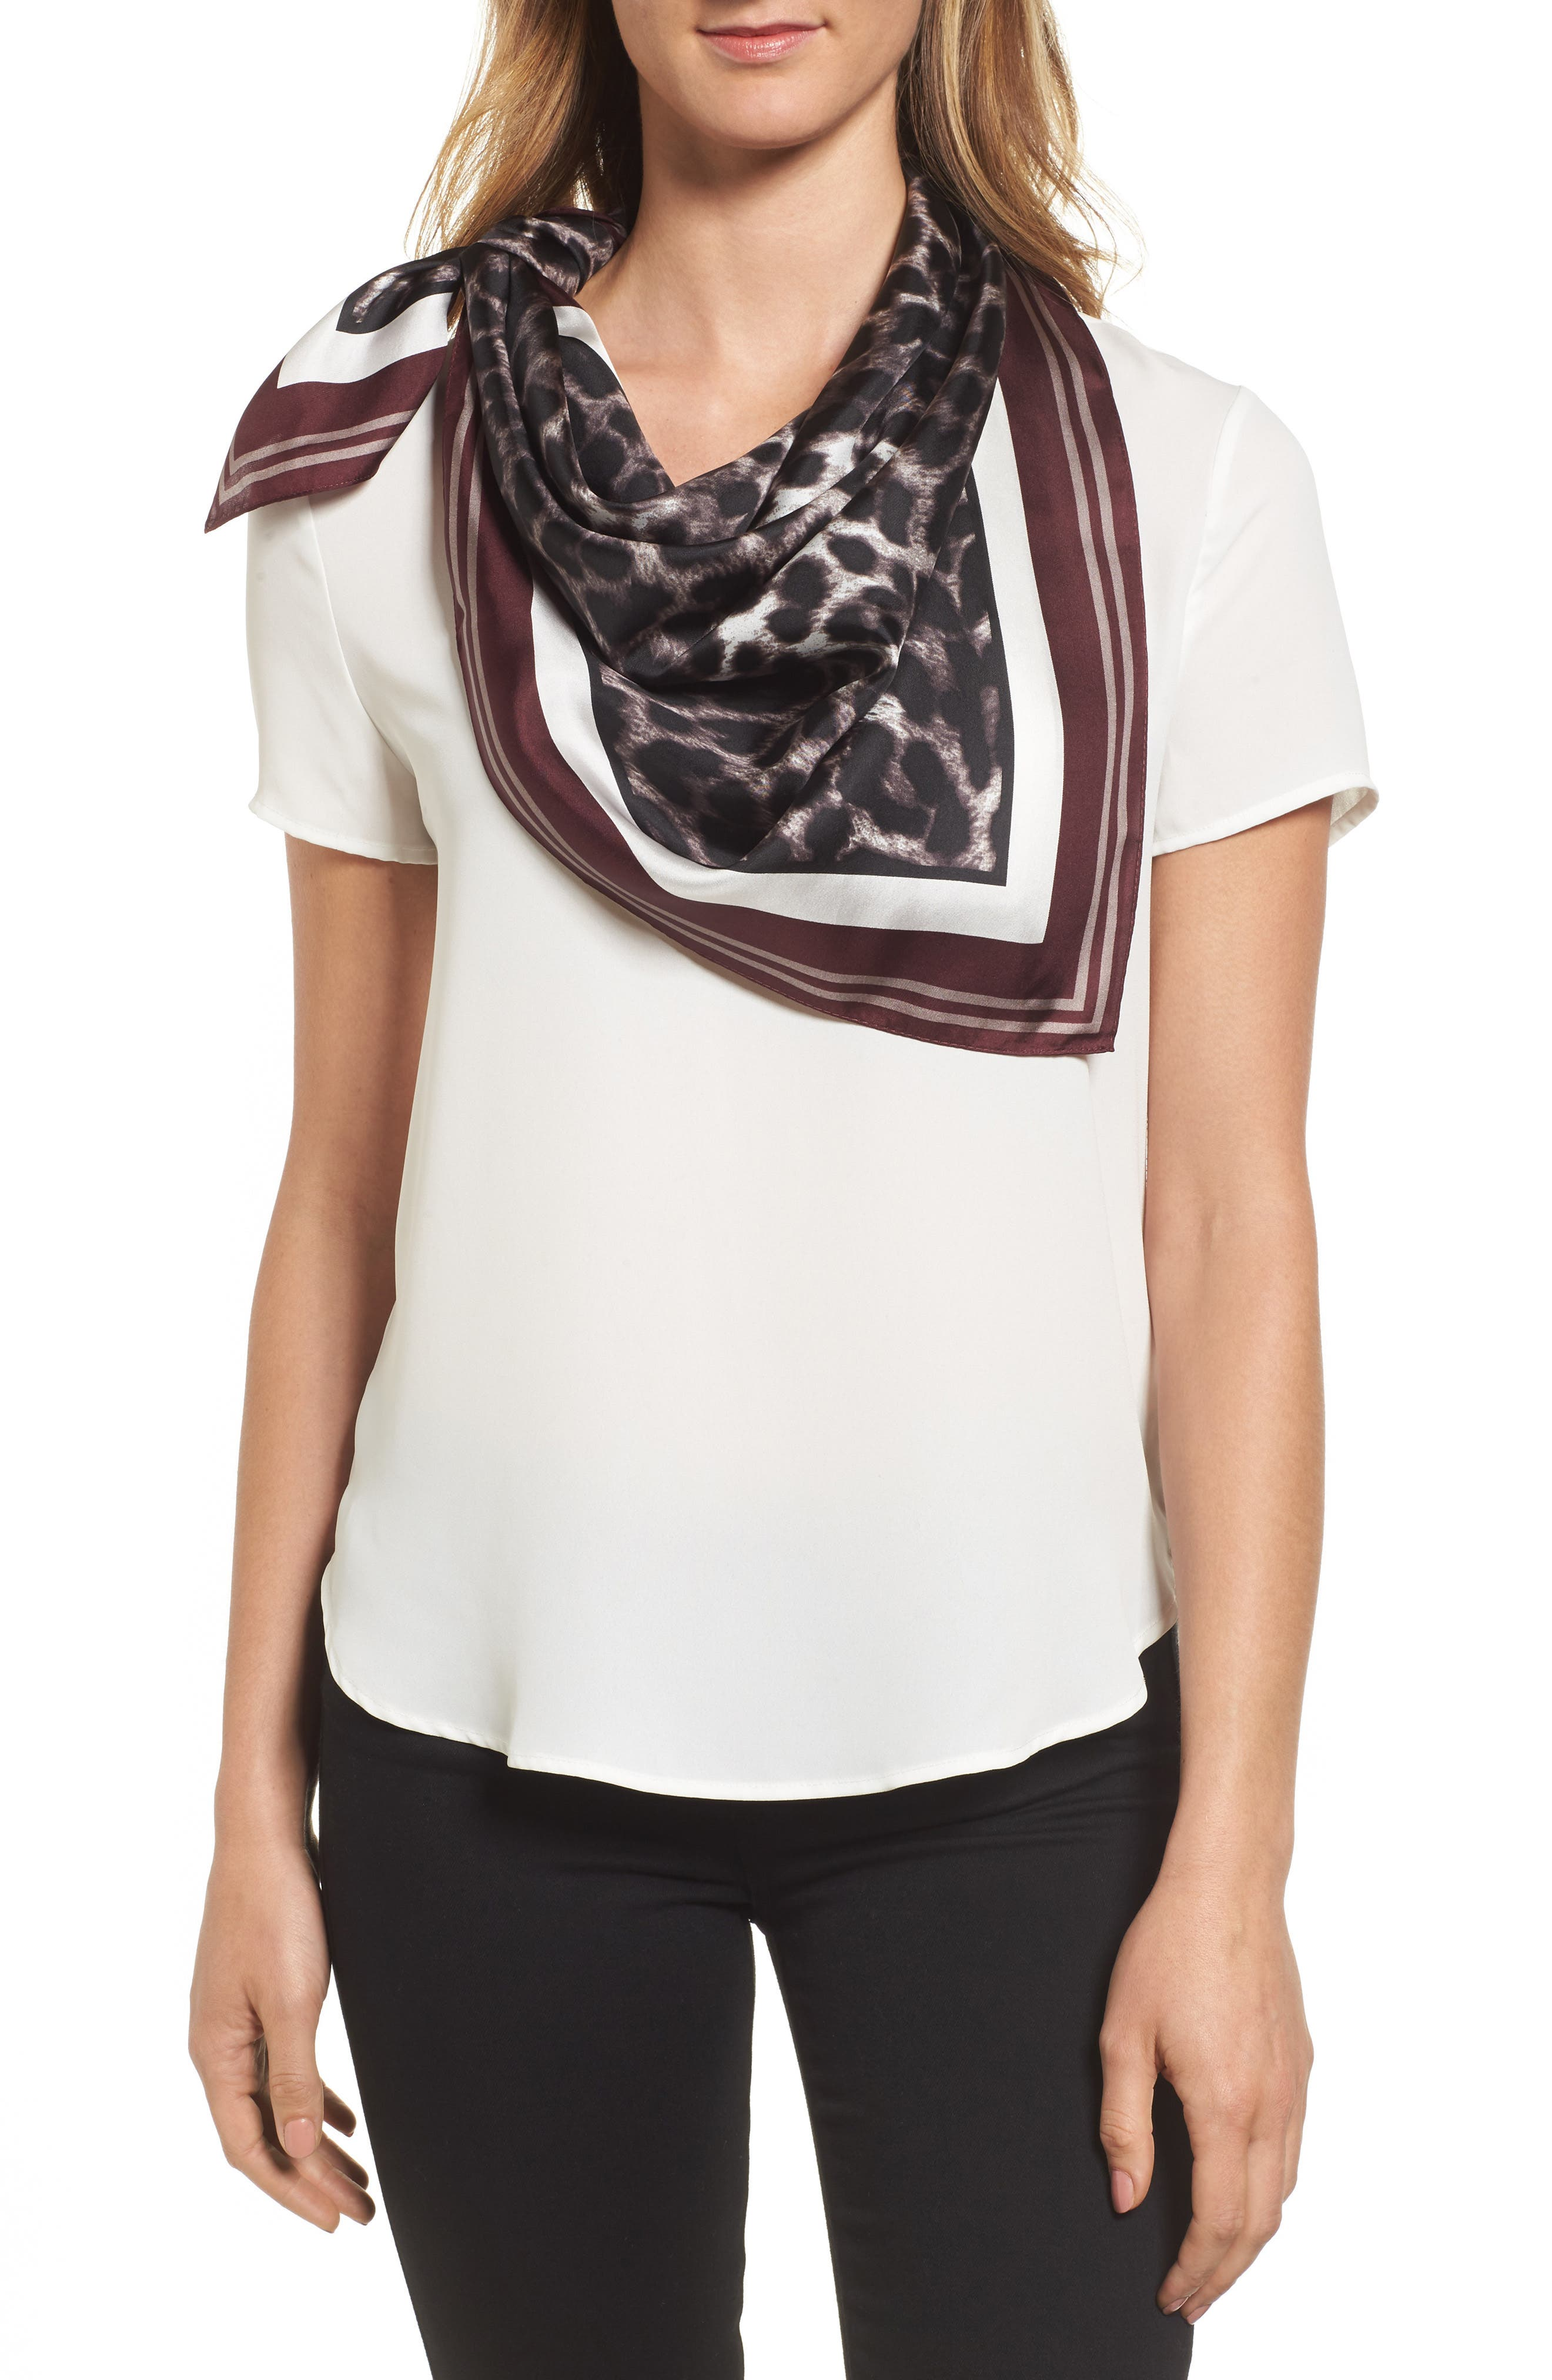 Main Image - Vince Camuto Racing Leopard Silk Square Scarf